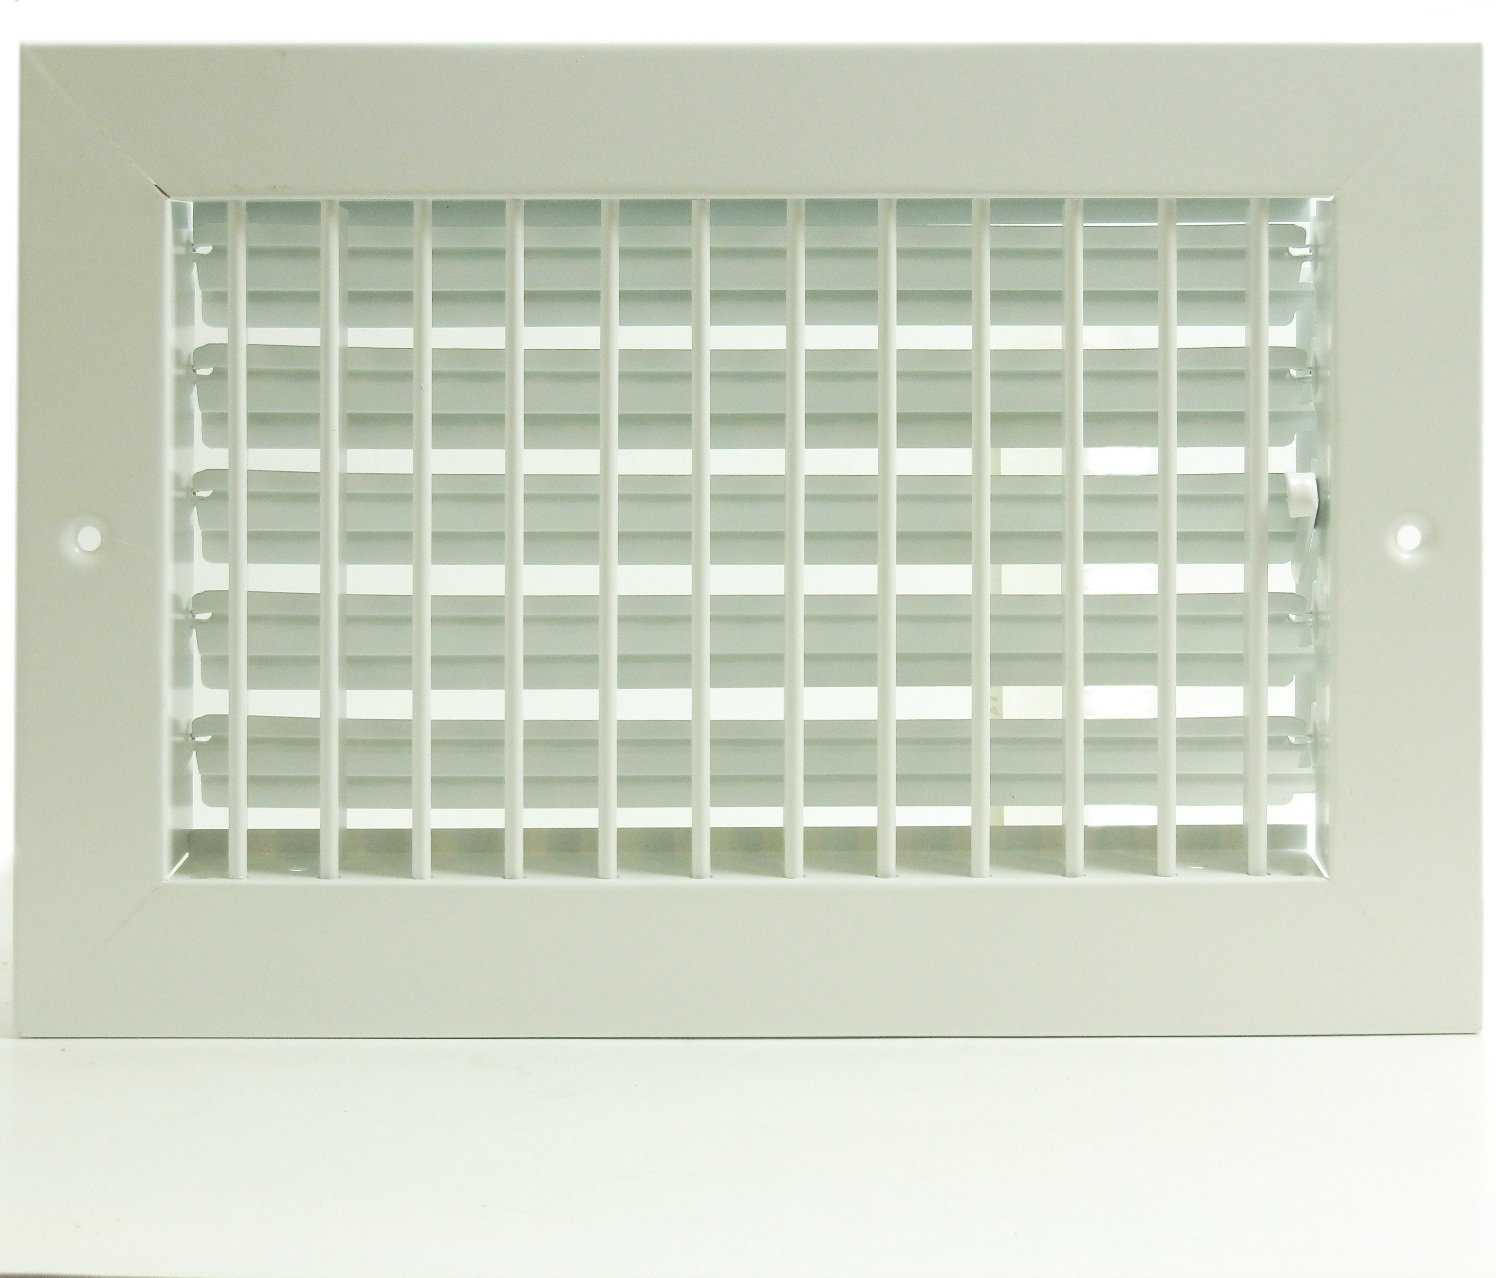 16'' X 4'' ADJUSTABLE AIR SUPPLY DIFFUSER - HVAC Vent Duct Cover Sidewall or Cieling - Grille Register - High Airflow - White